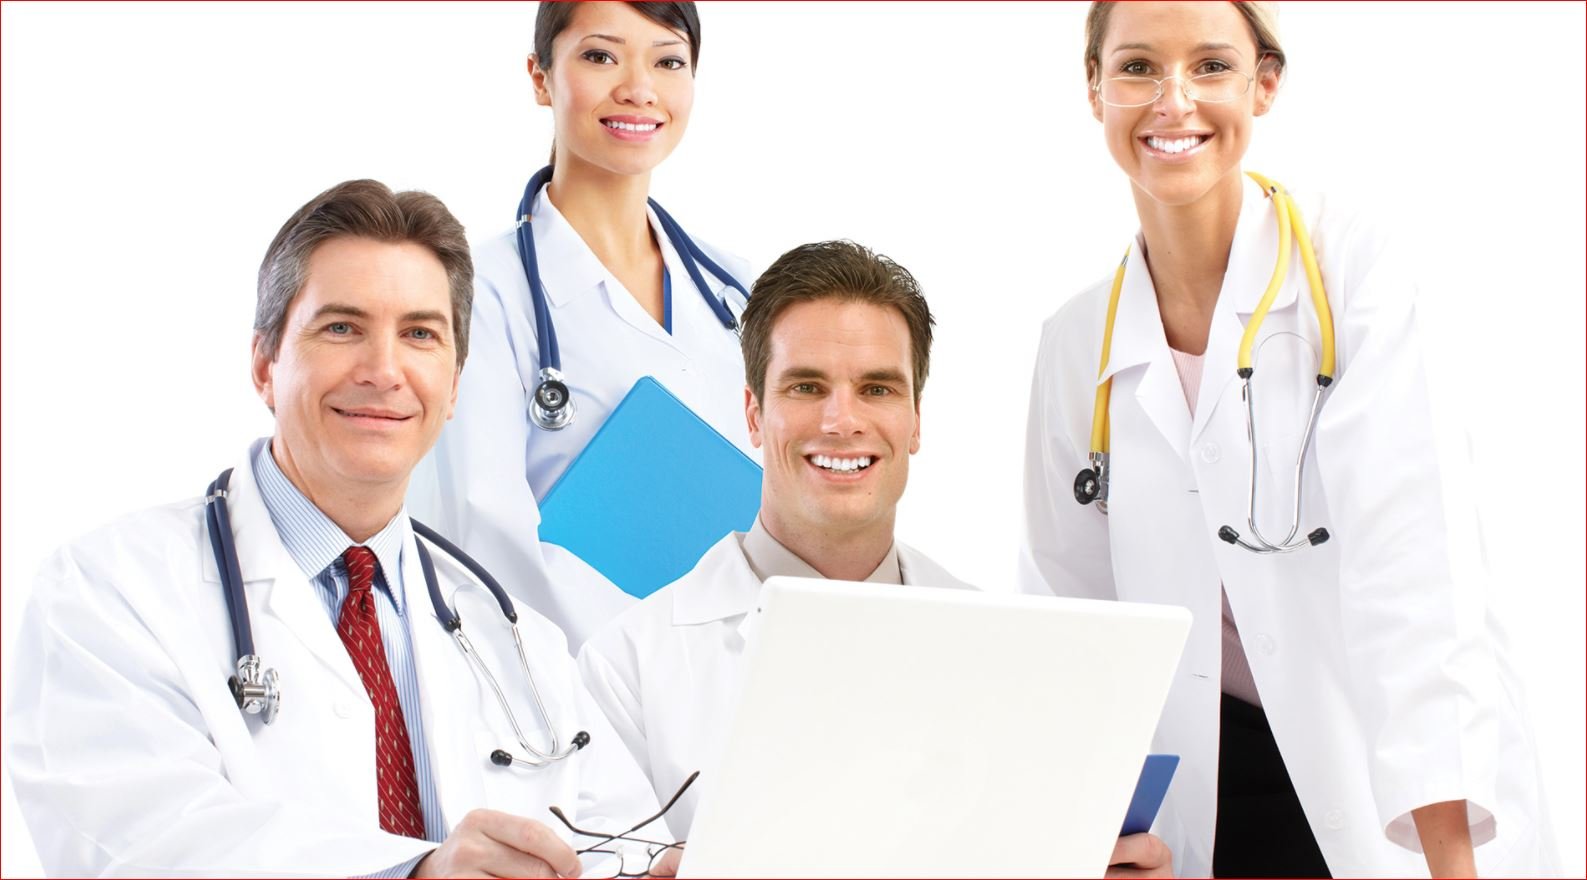 Orlando Health Employee Benefits packages